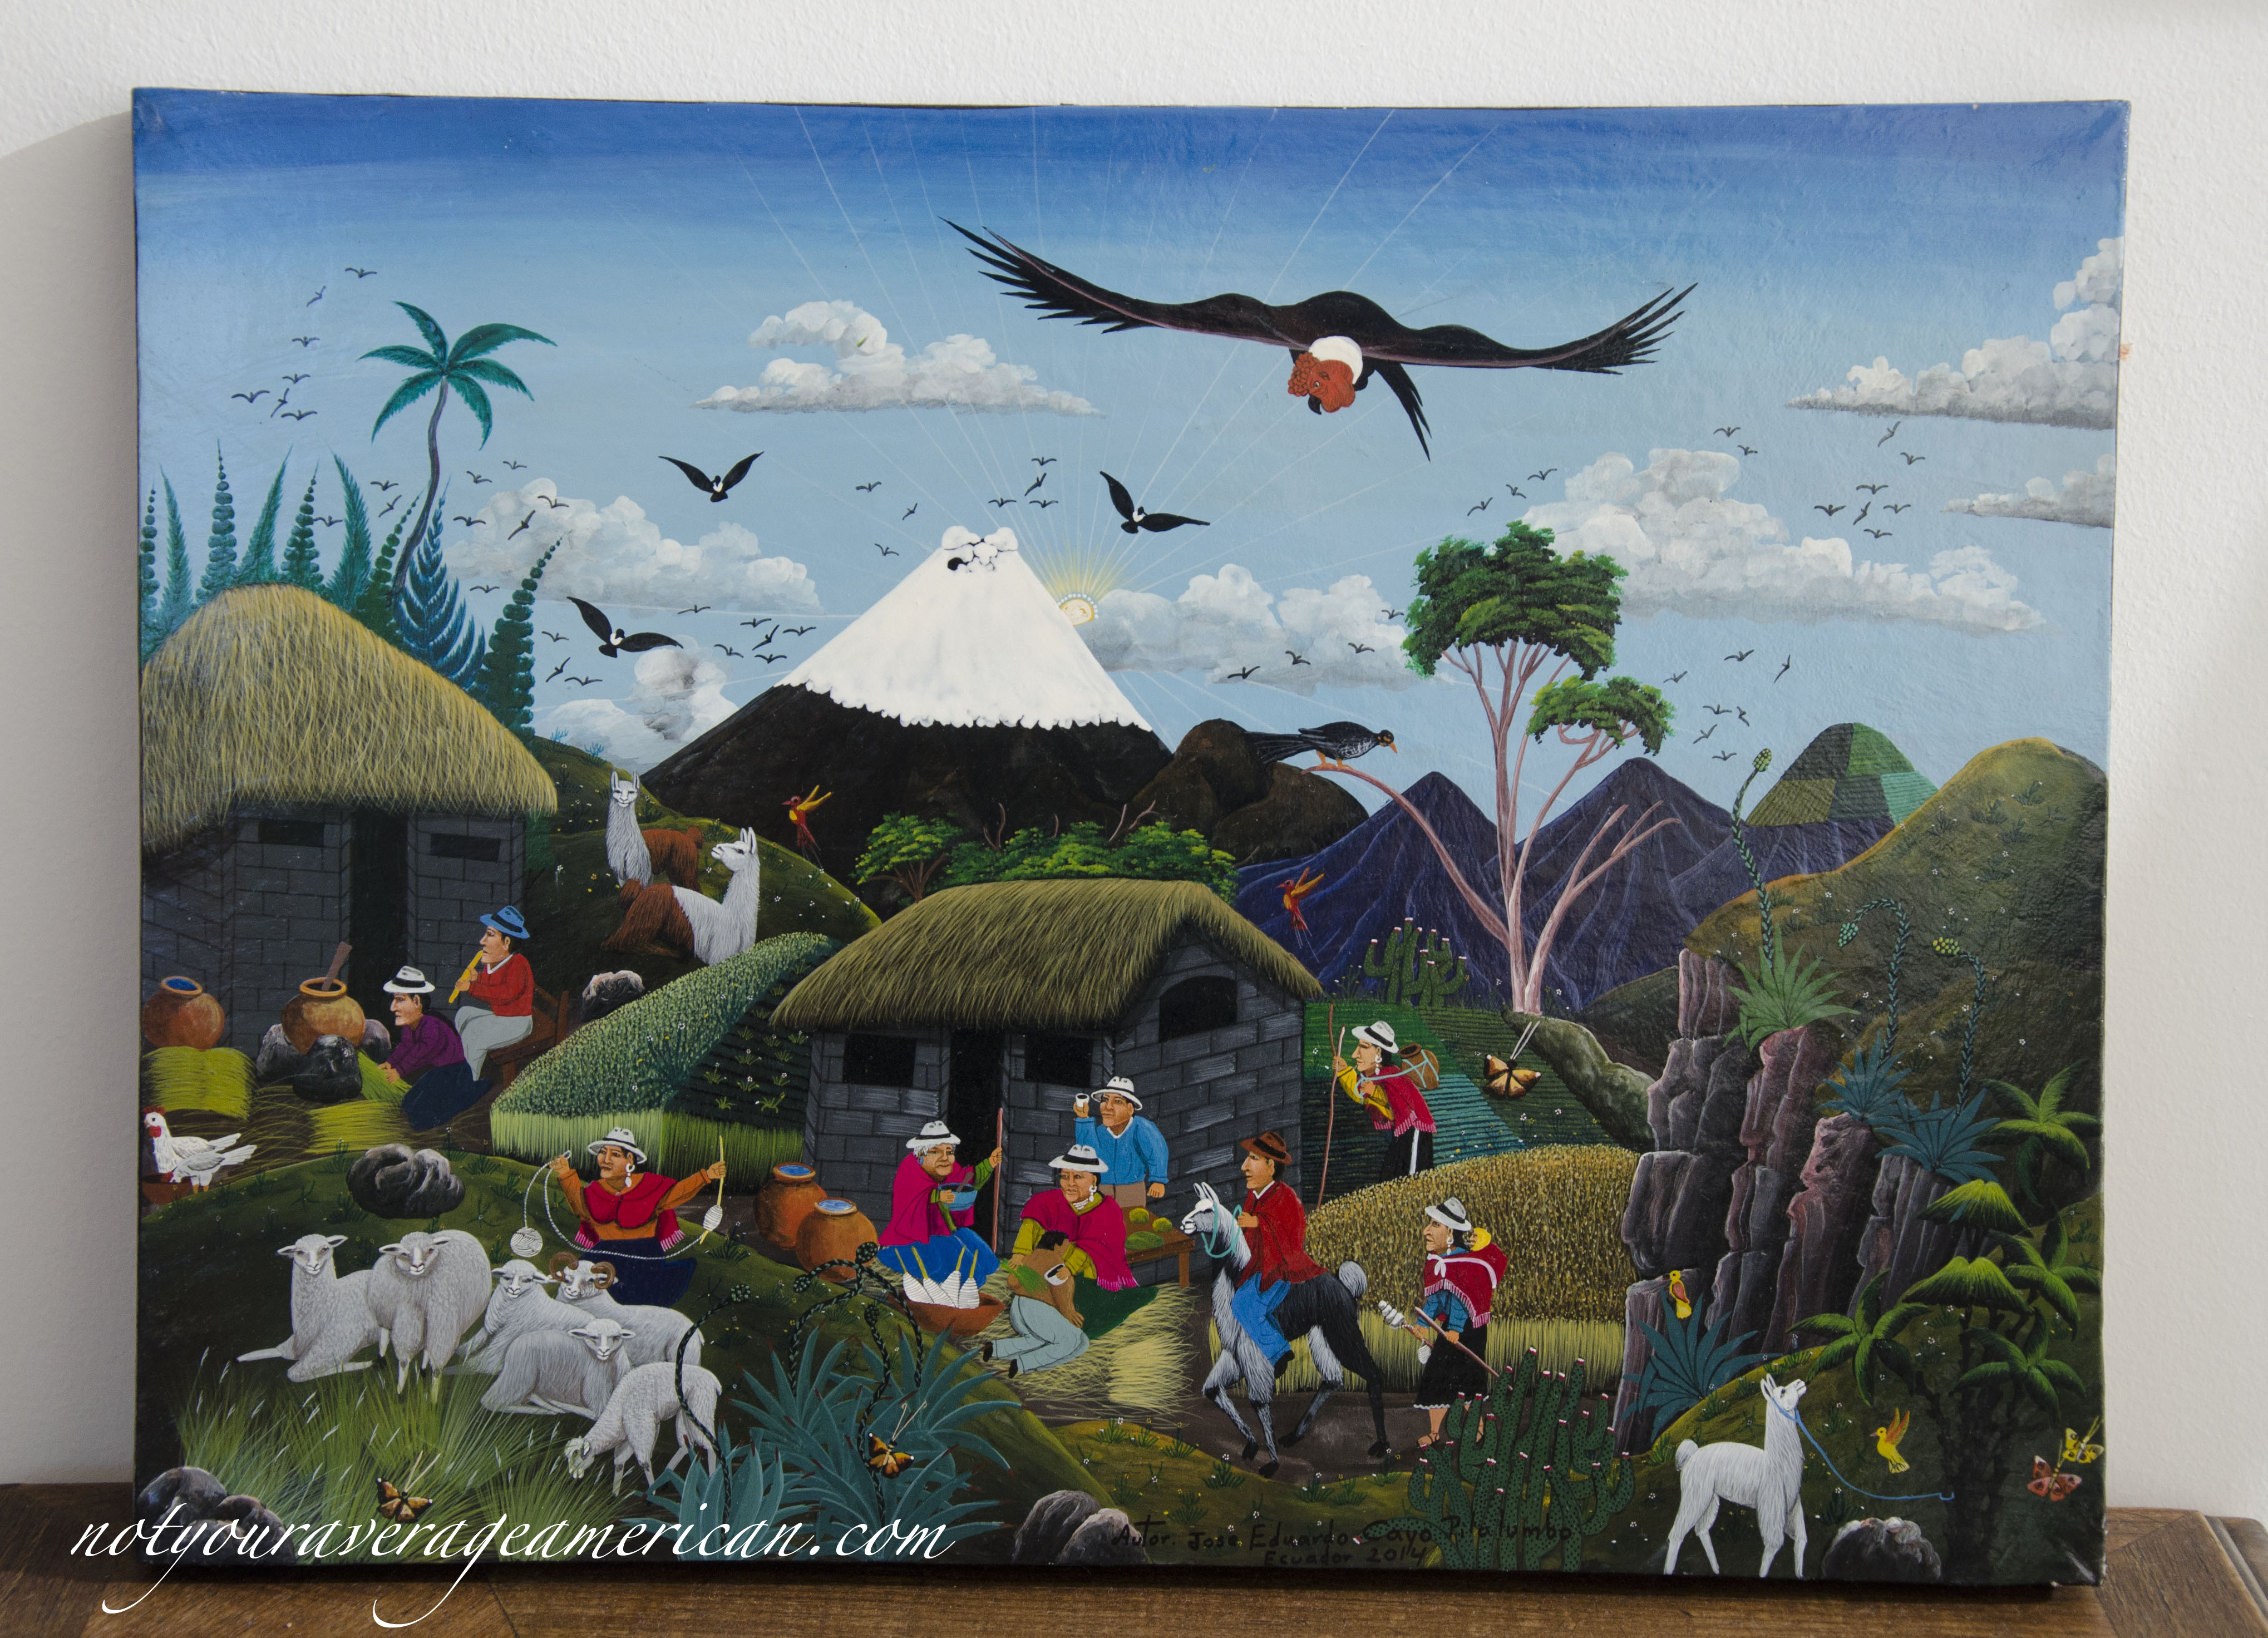 An example of Tigua art purchased at the Mariscal Artisans Market.